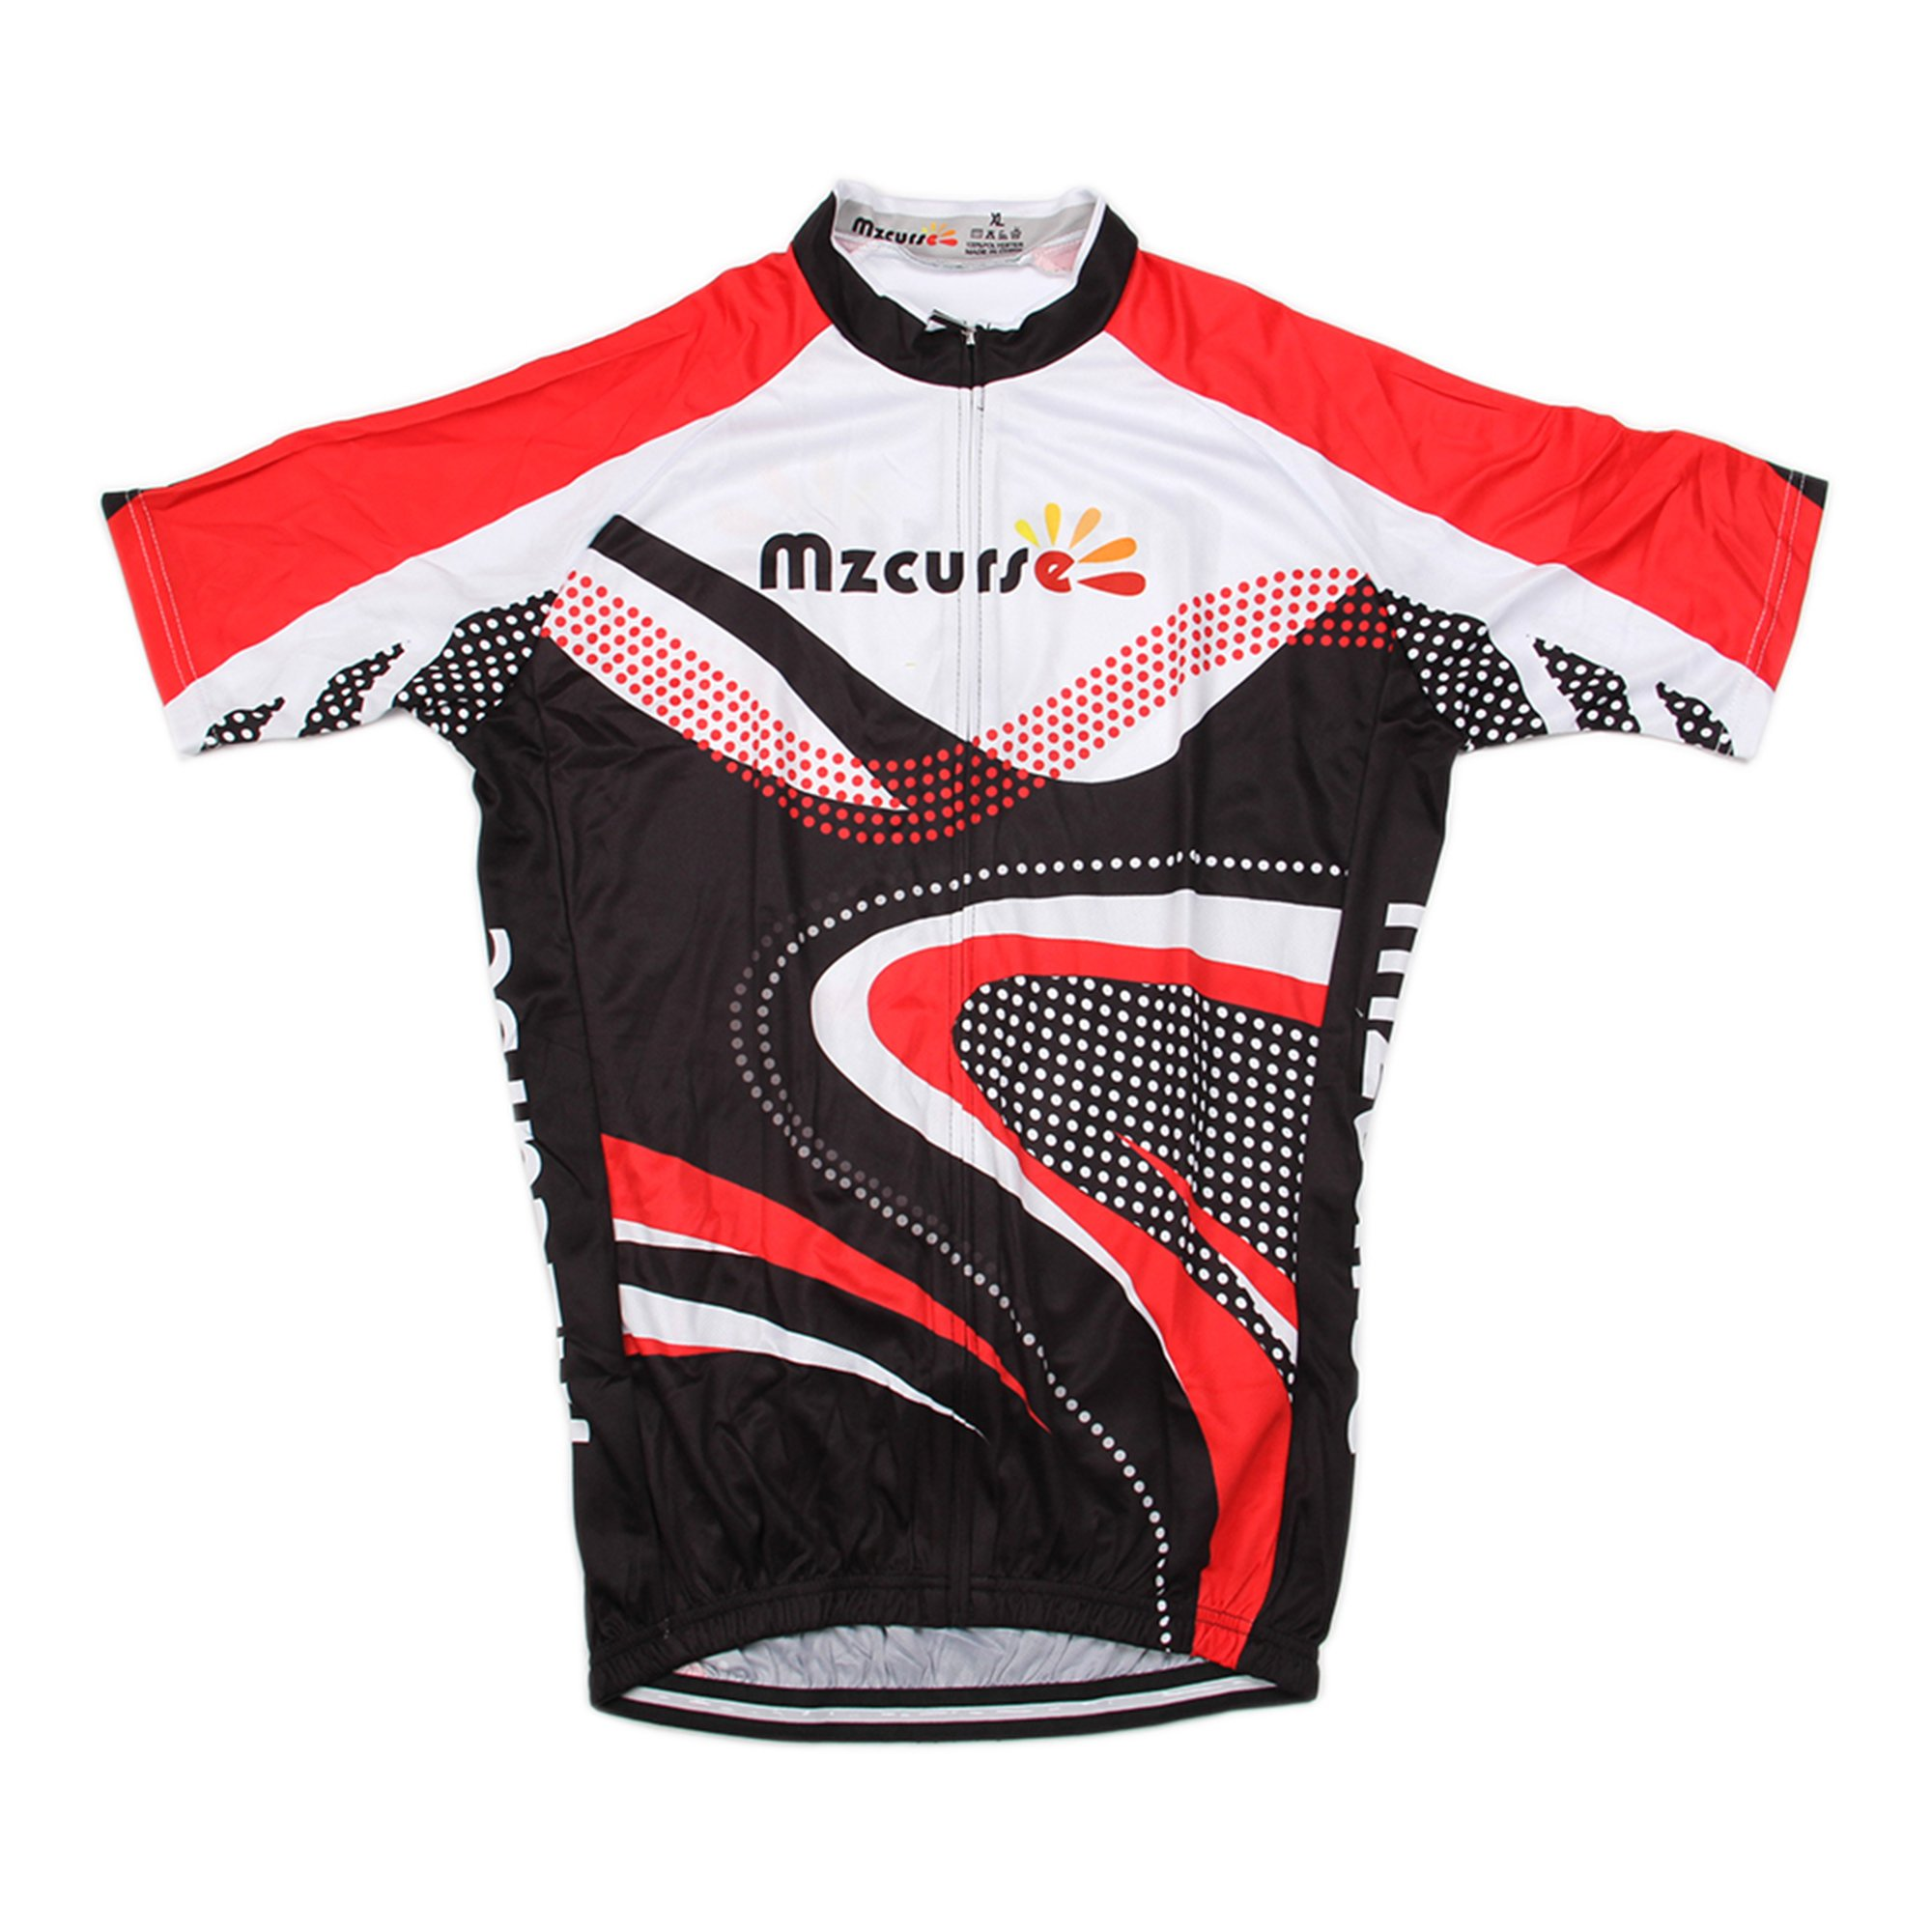 mzcurse Mens Short Sleeve Cycling Jersey Shirt Bicycle Bike Tees